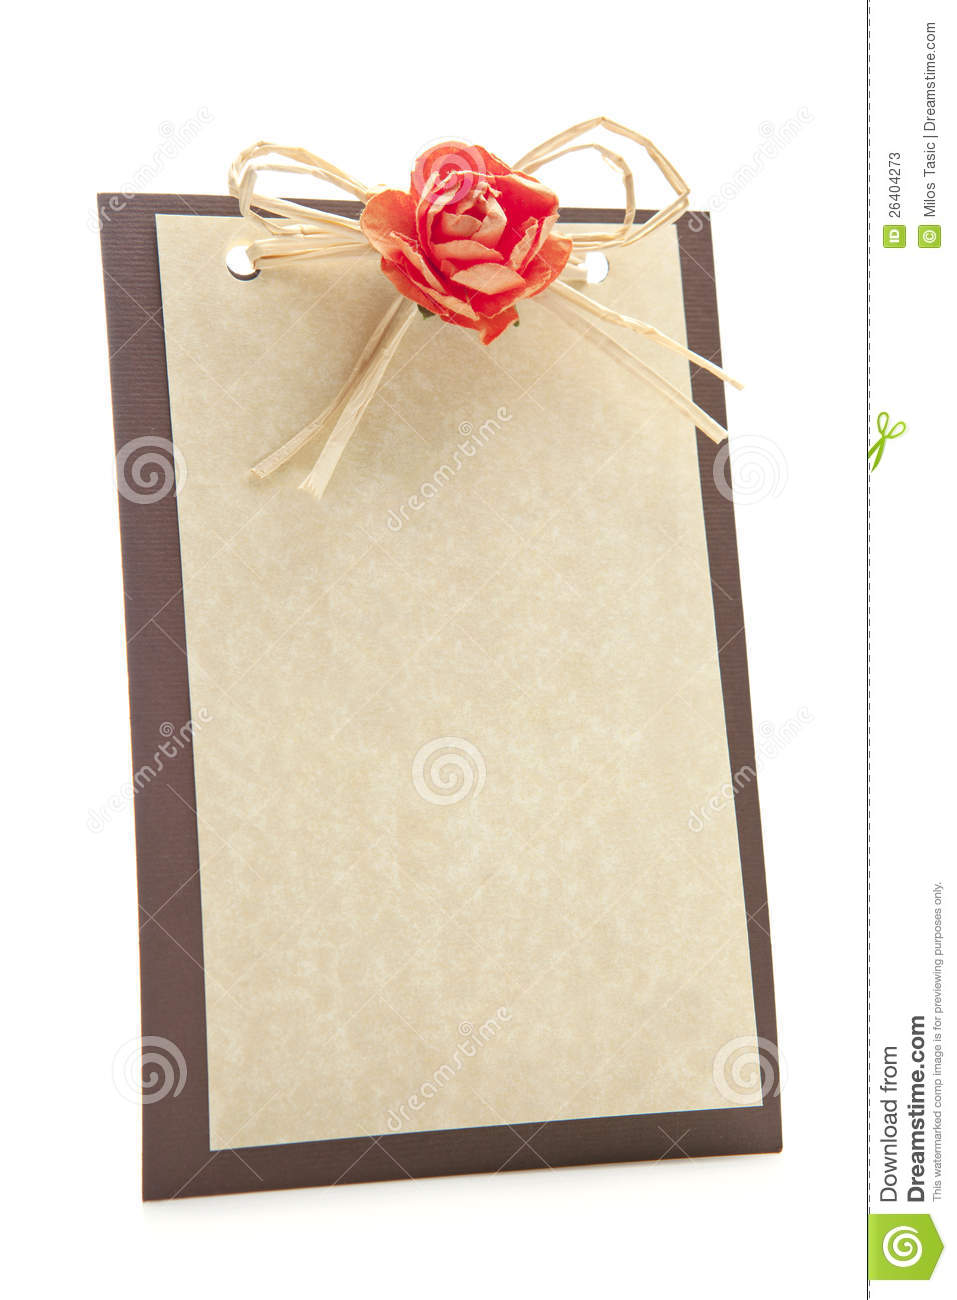 invitation card - Invitation Card Stock